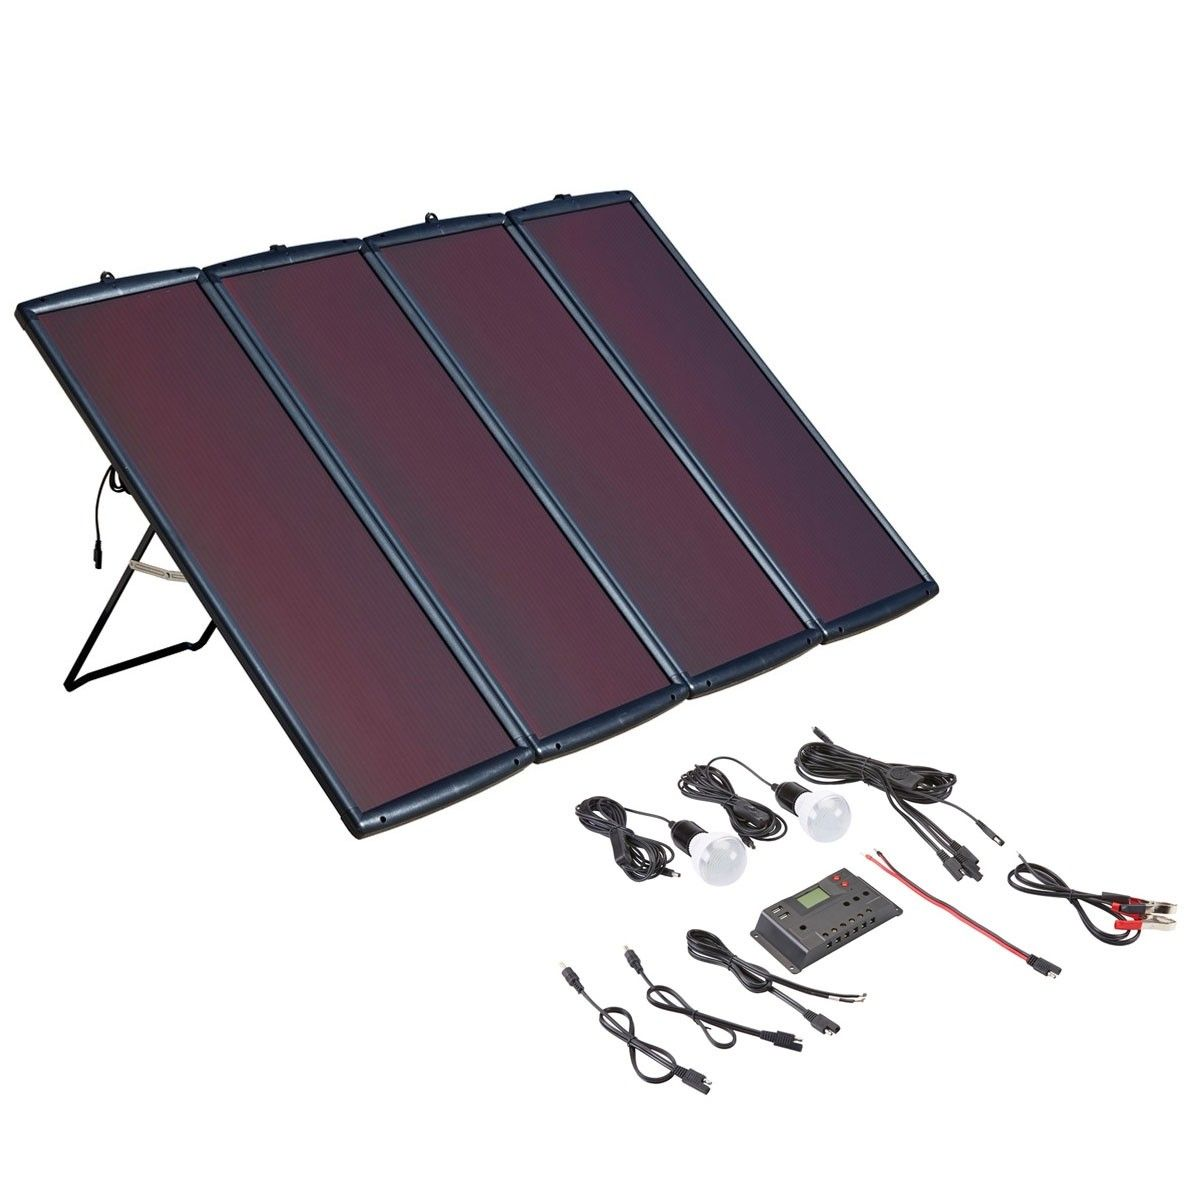 100 Watt Solar Panel Kit Solar Panel Kits 100 Watt Solar Panel Solar Energy Panels